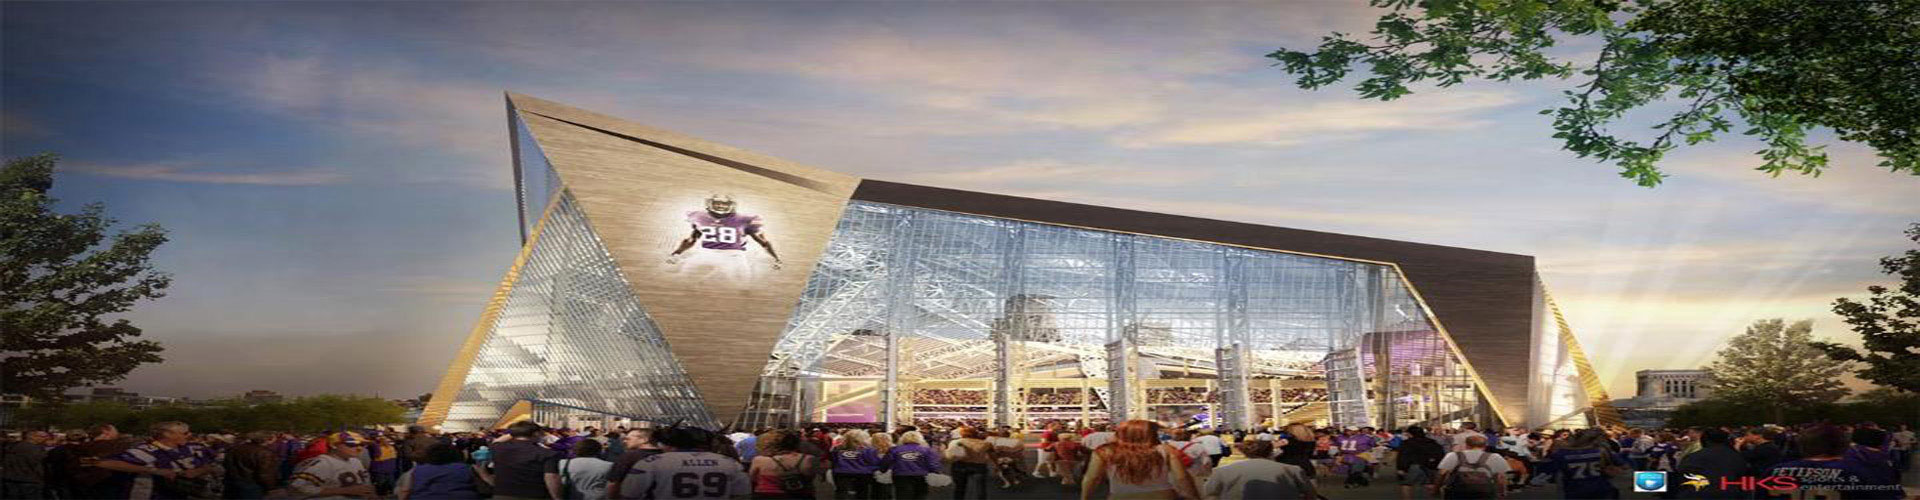 Vikings-Renderings-1